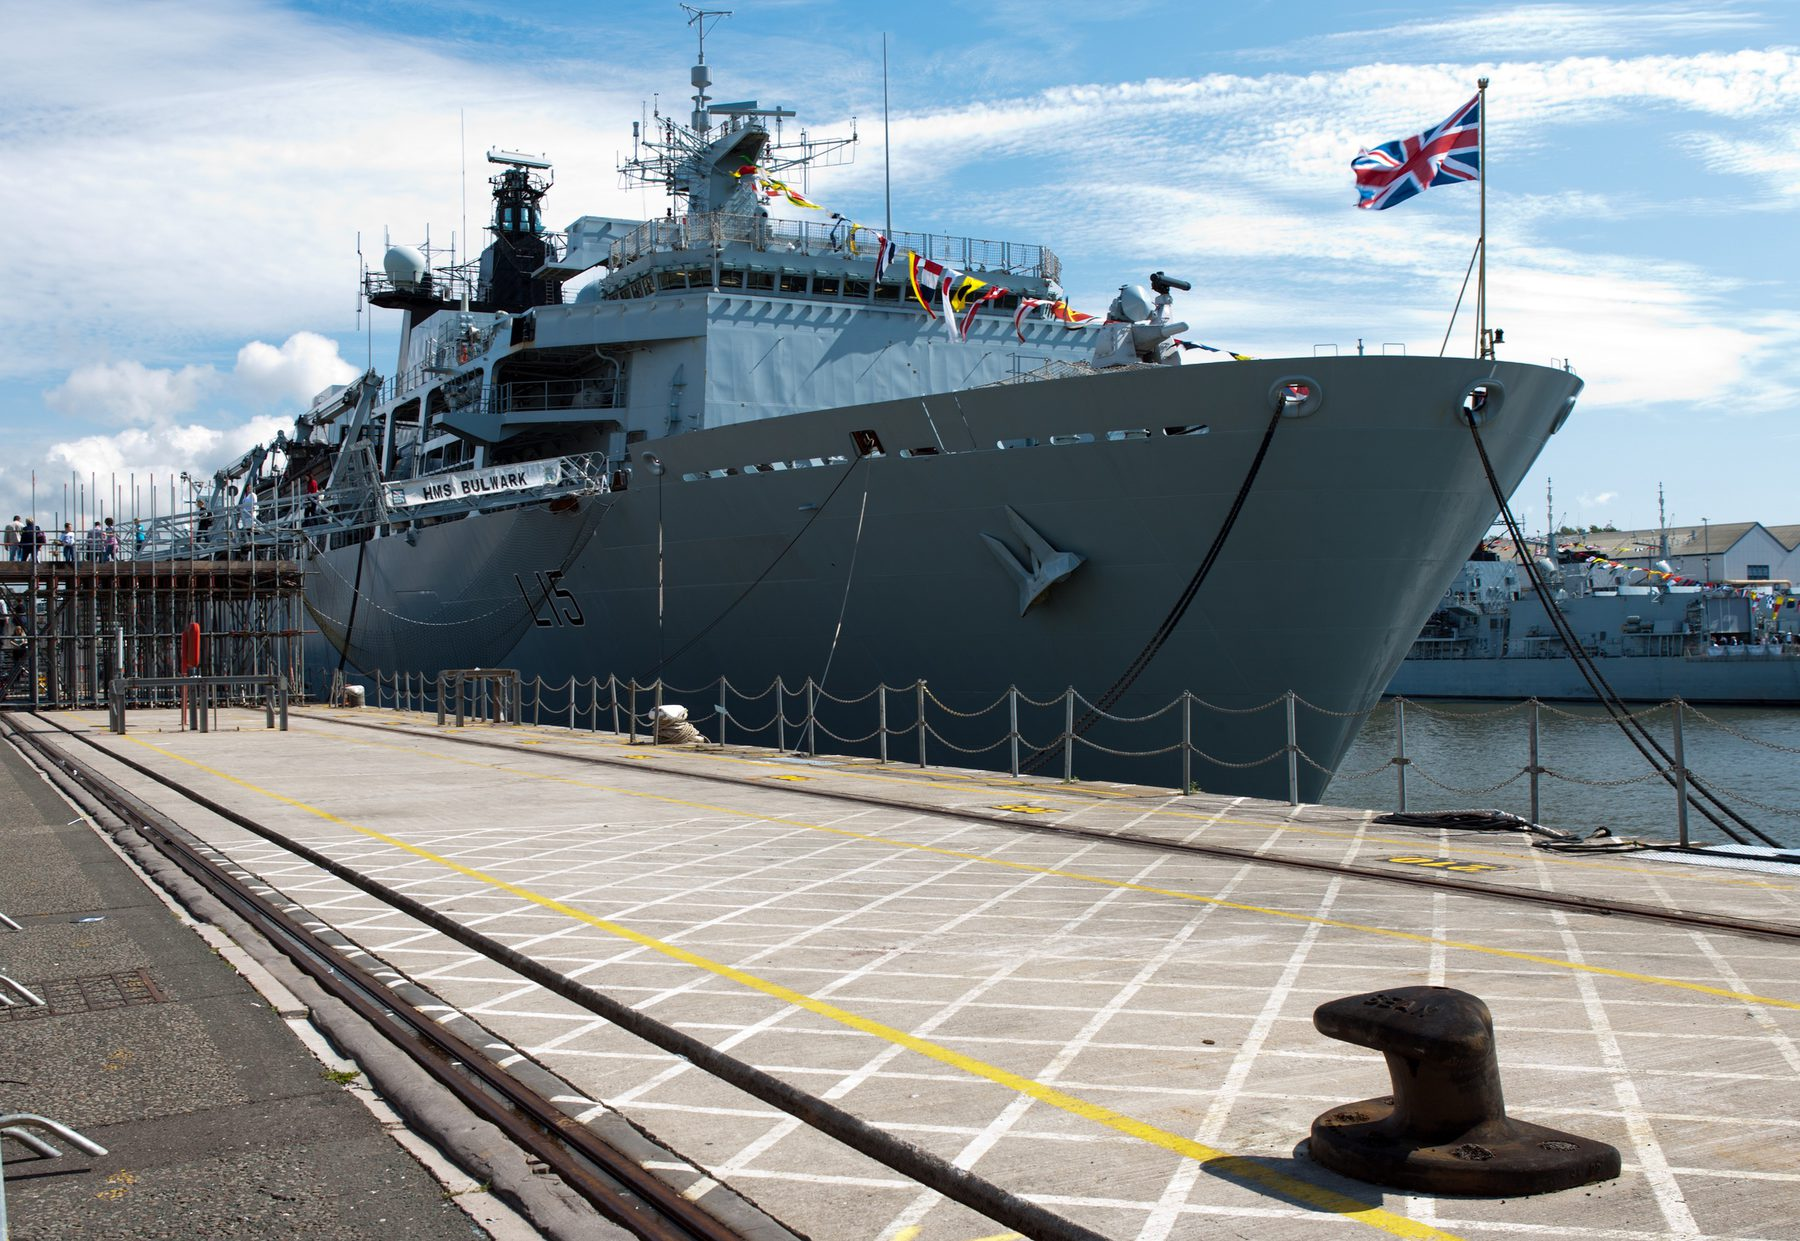 Royal Navy (Sector Header: Ship in Dock)